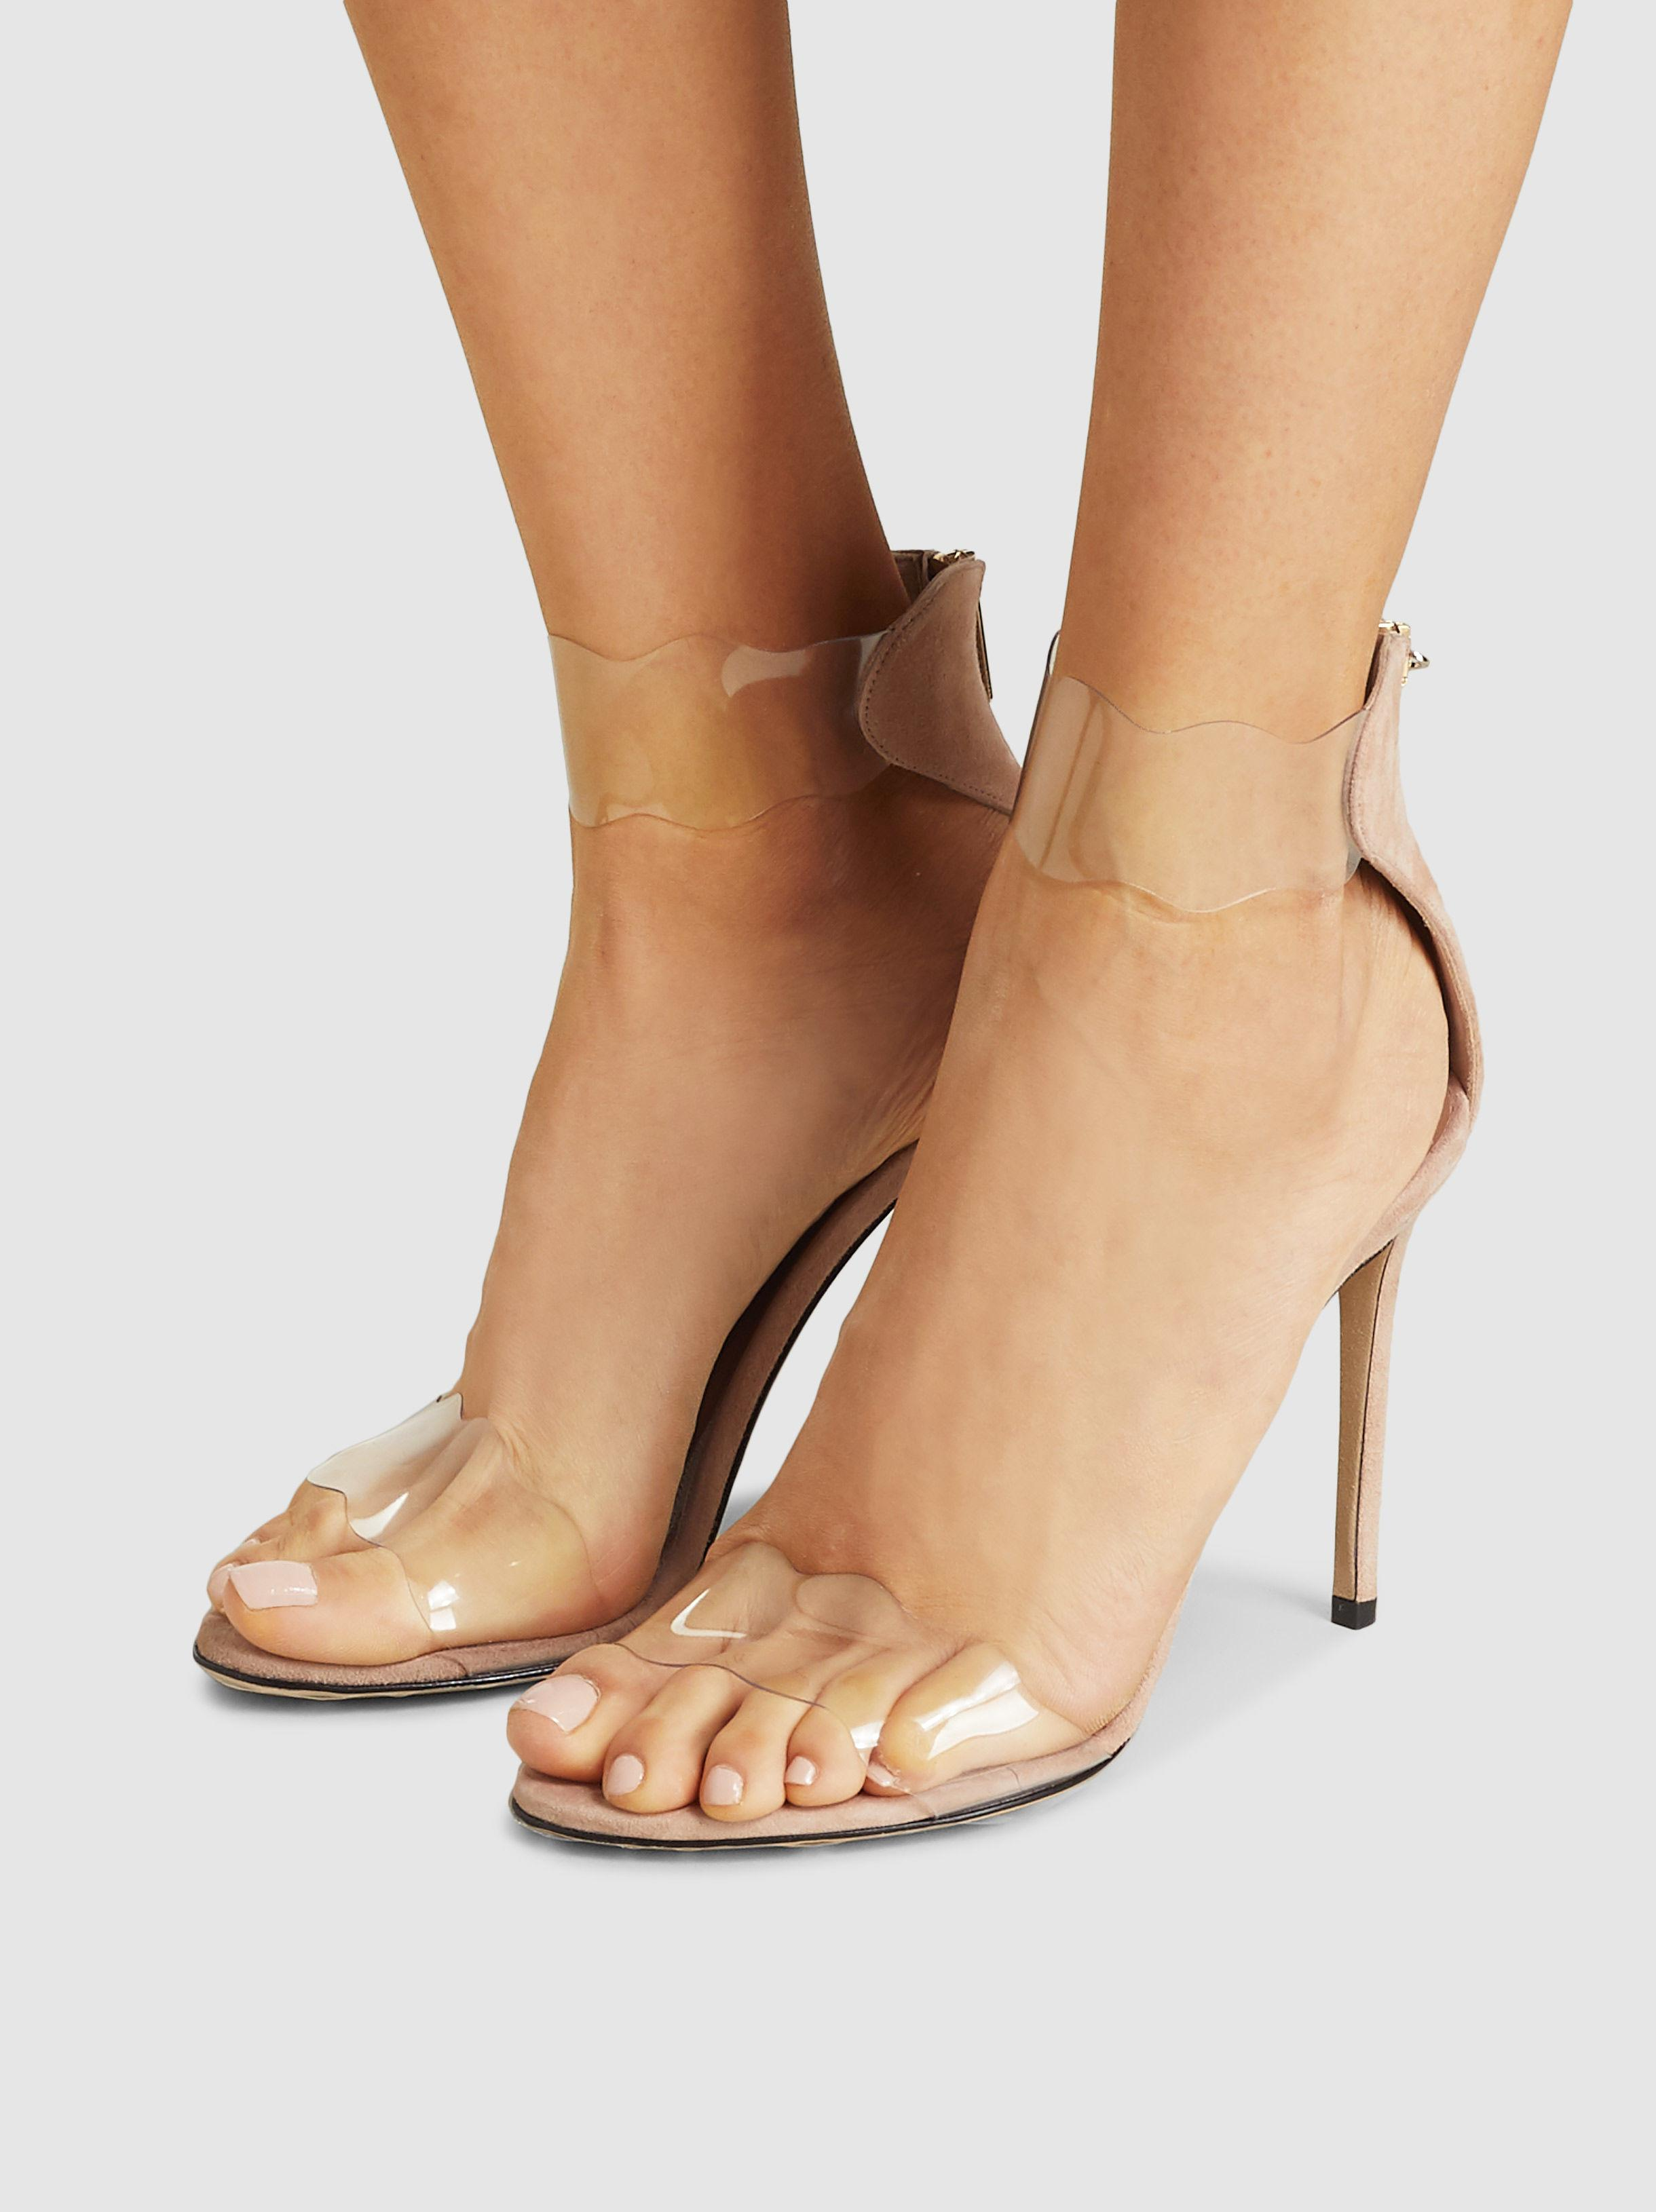 f158460e64c8a Lyst - Marskinryyppy Nude And Clear Pvc Stiletto High Heel in Natural